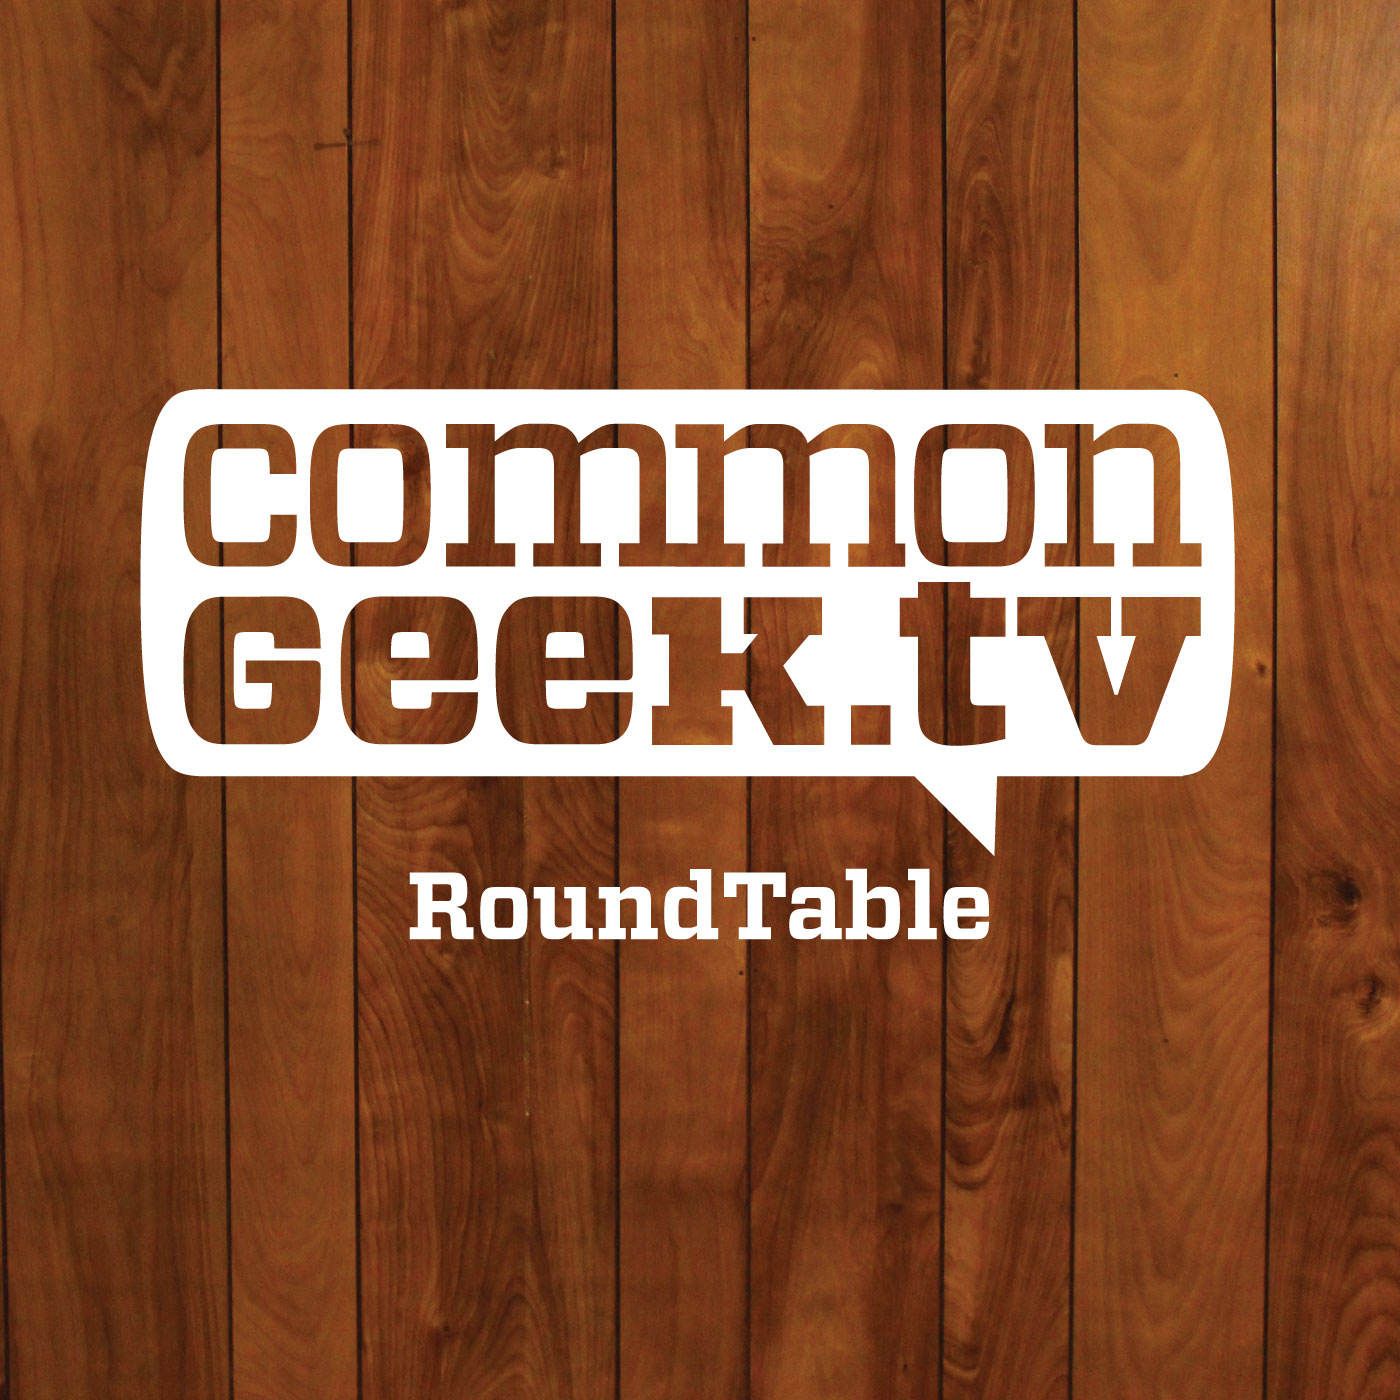 CommonGeek RoundTable